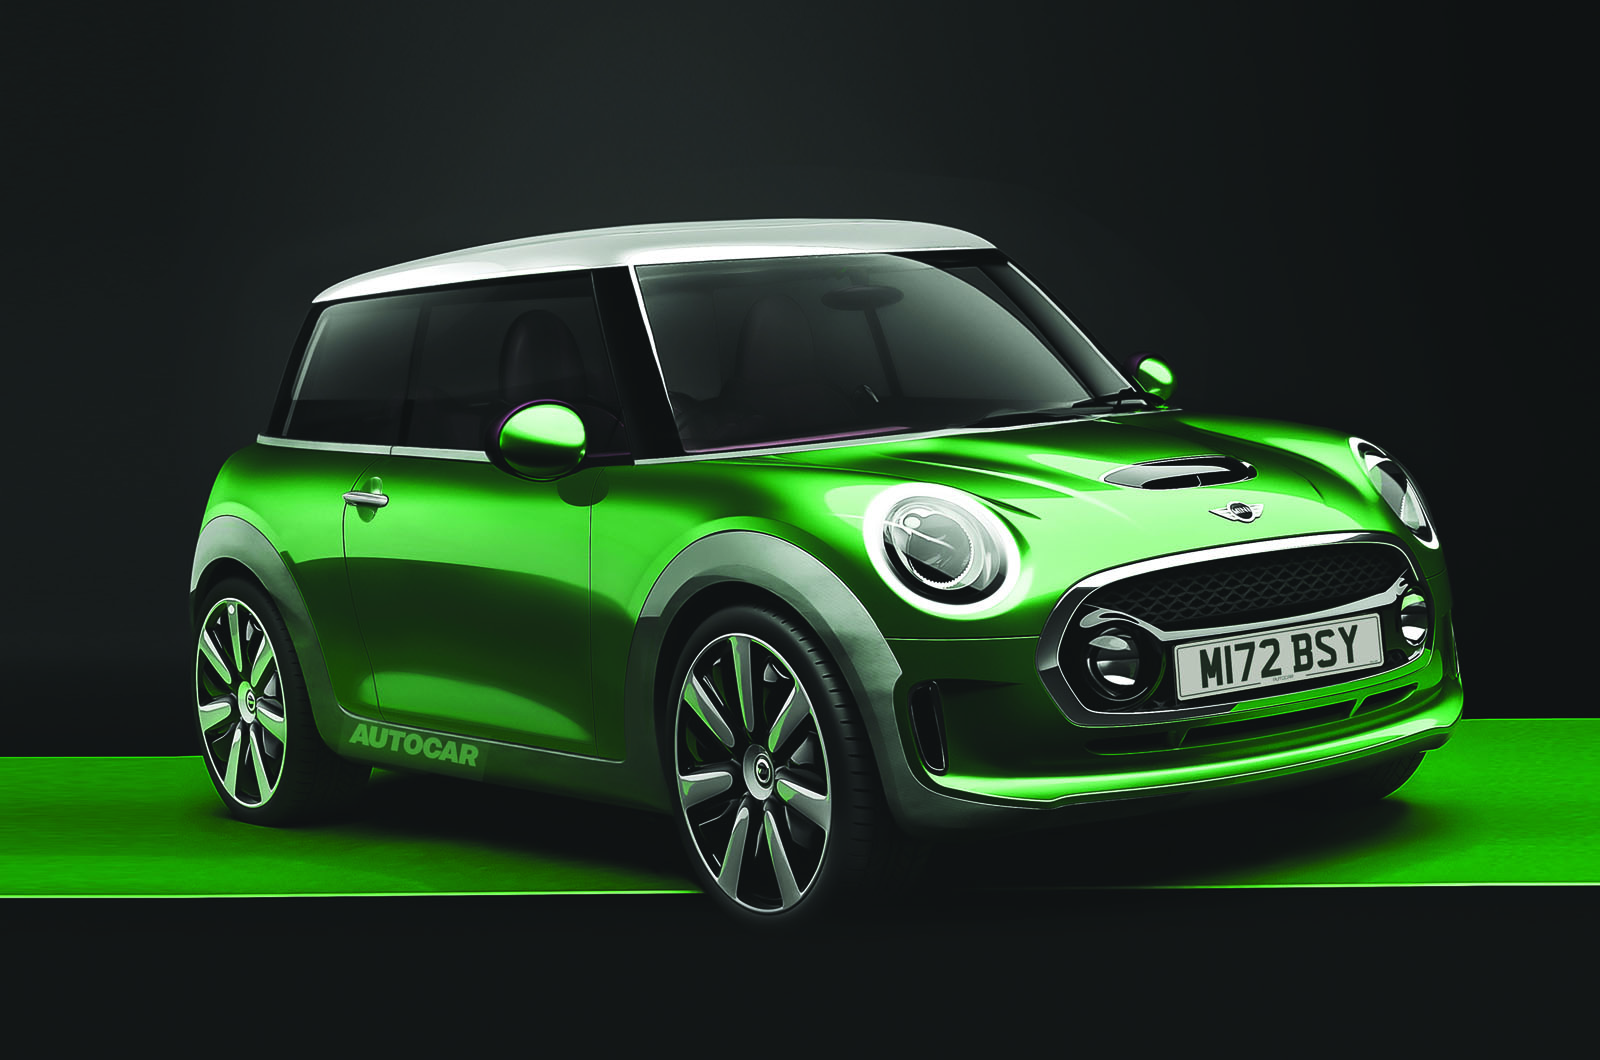 Mini to shrink flagship hatch and launch Traveller crossover  Autocar